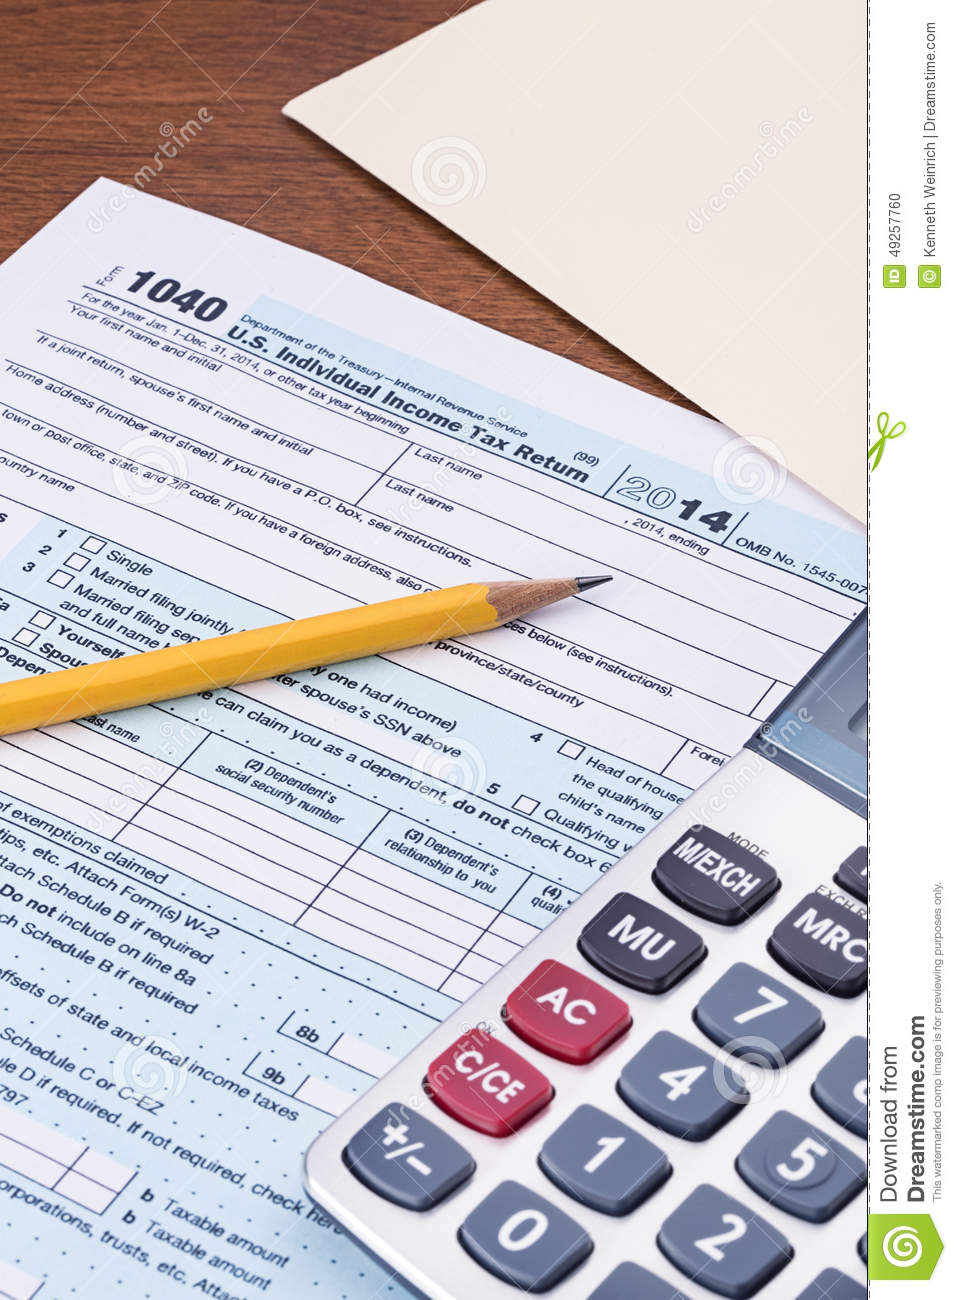 Form 1040 For 2014 Tax Year Stock Photo Image Of 1040 States